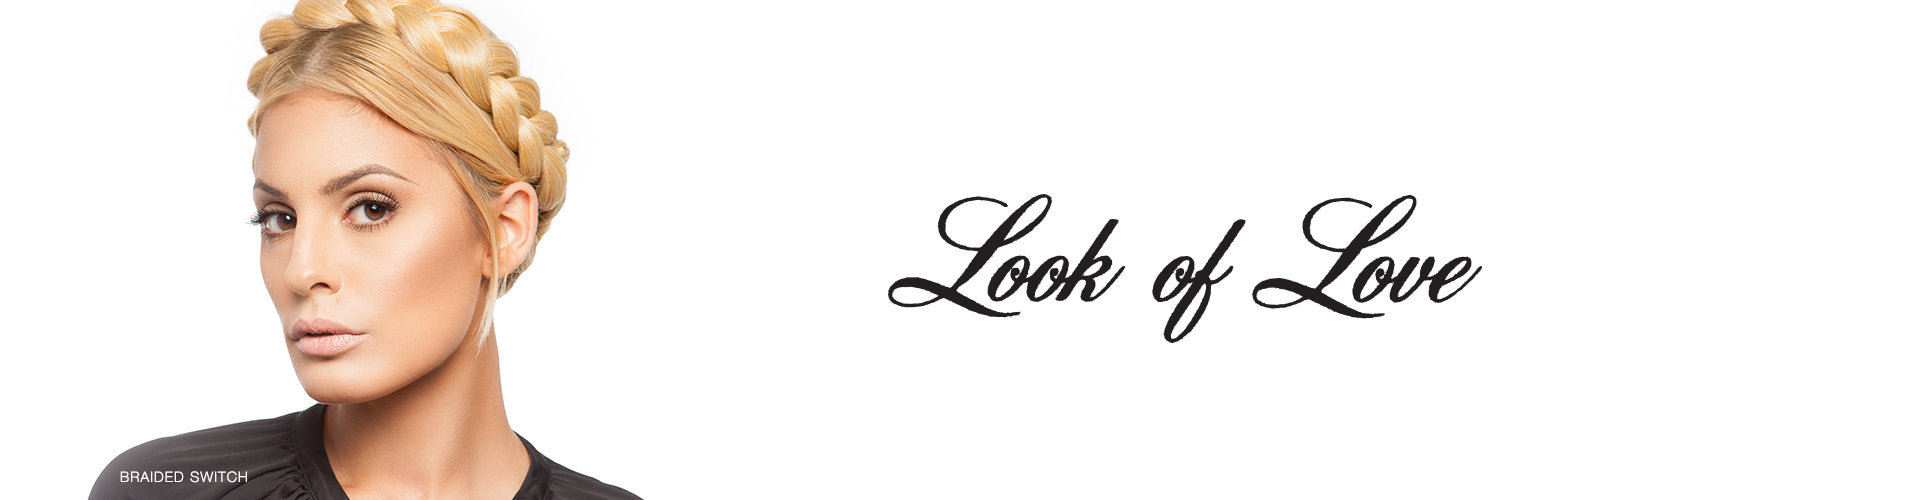 Look of Love - Hair Add-Ons & Hairpieces